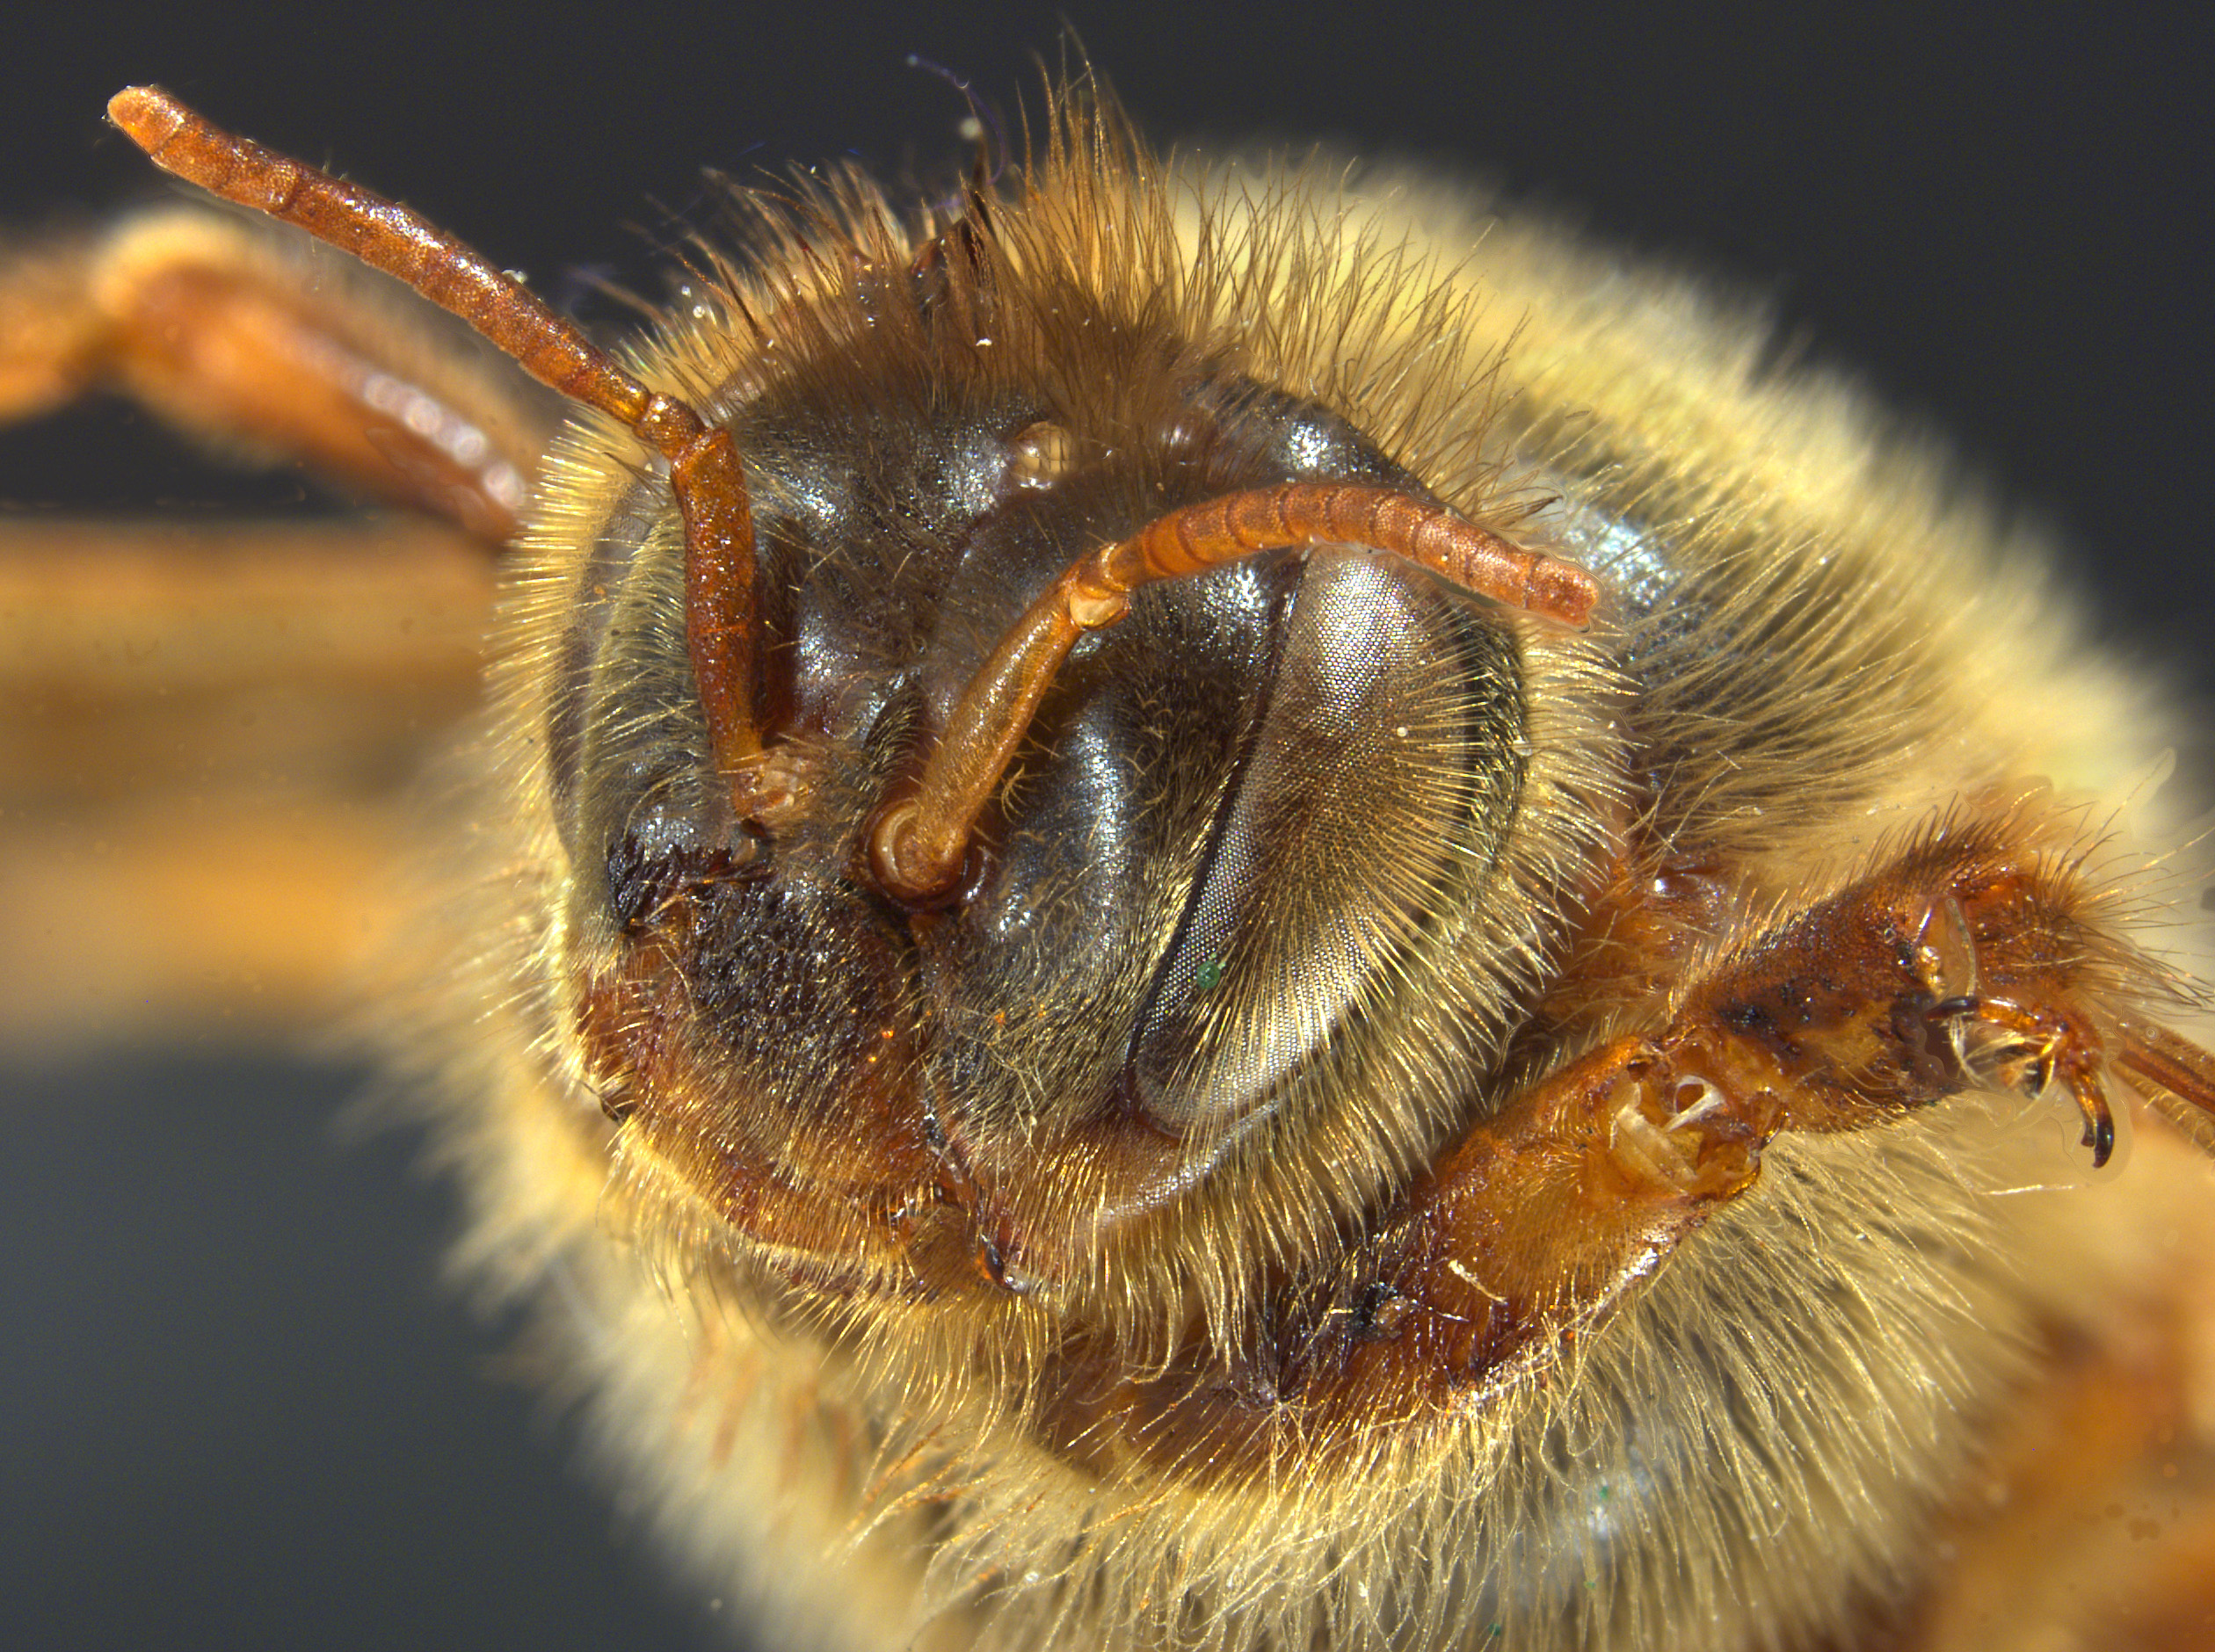 A close up of a pinned bee on a black background